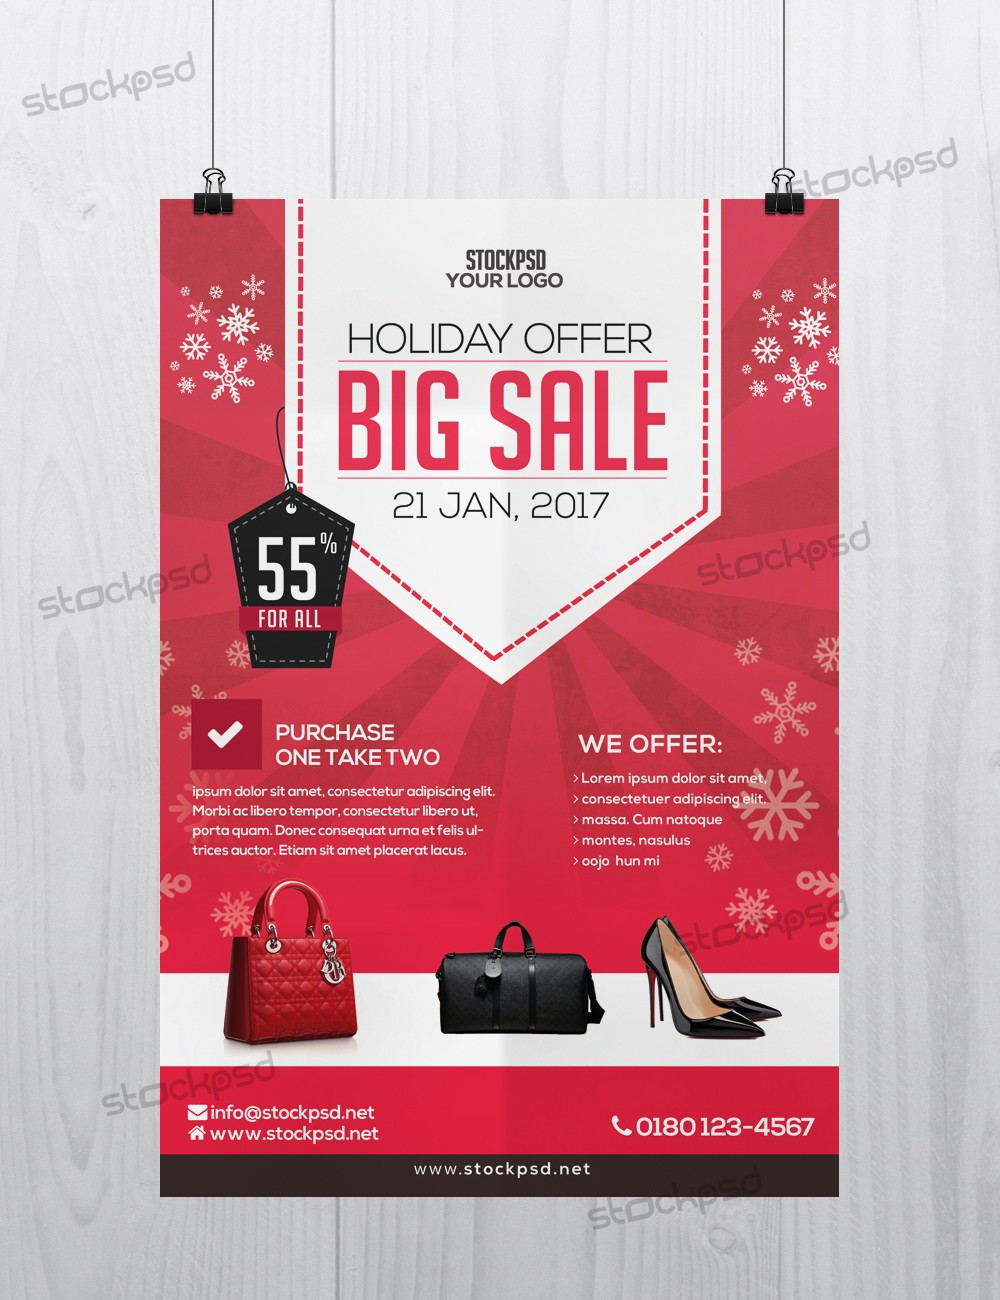 holiday 2017 big psd flyer template stockpsd net check also our exclusive flyer template new years eve 2017 party psd flyer